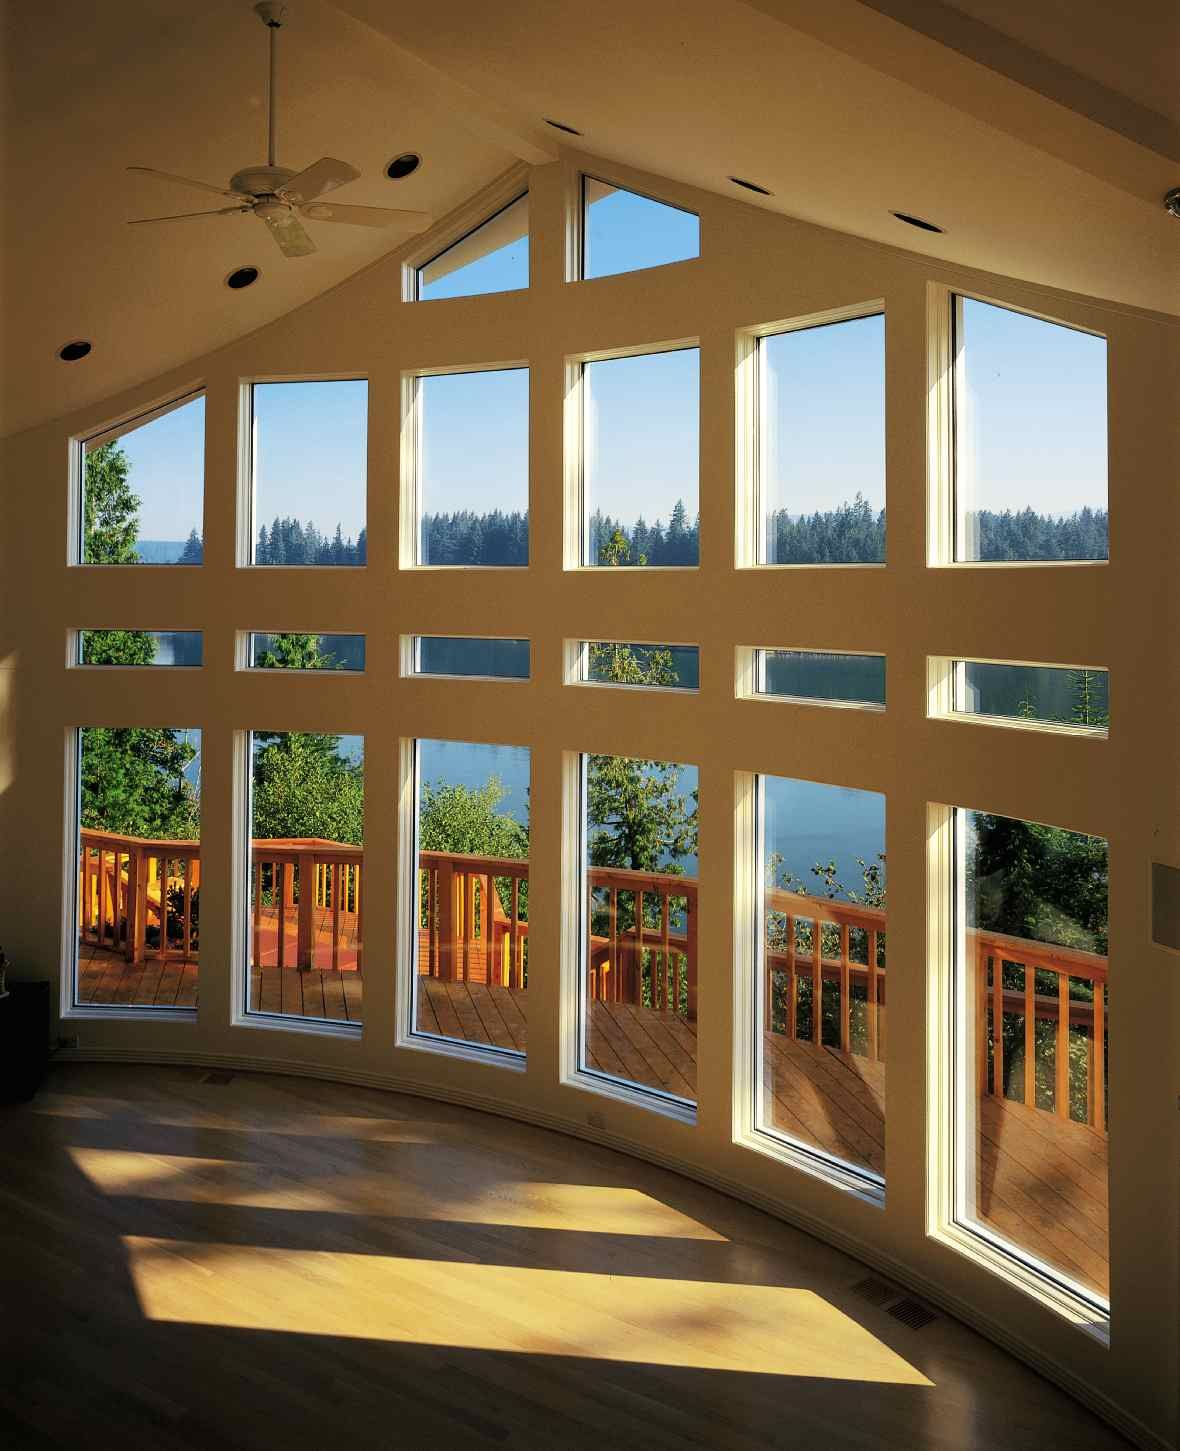 Window Wall Designs Home Windows Designs Newhomesinhouston Dream Home House